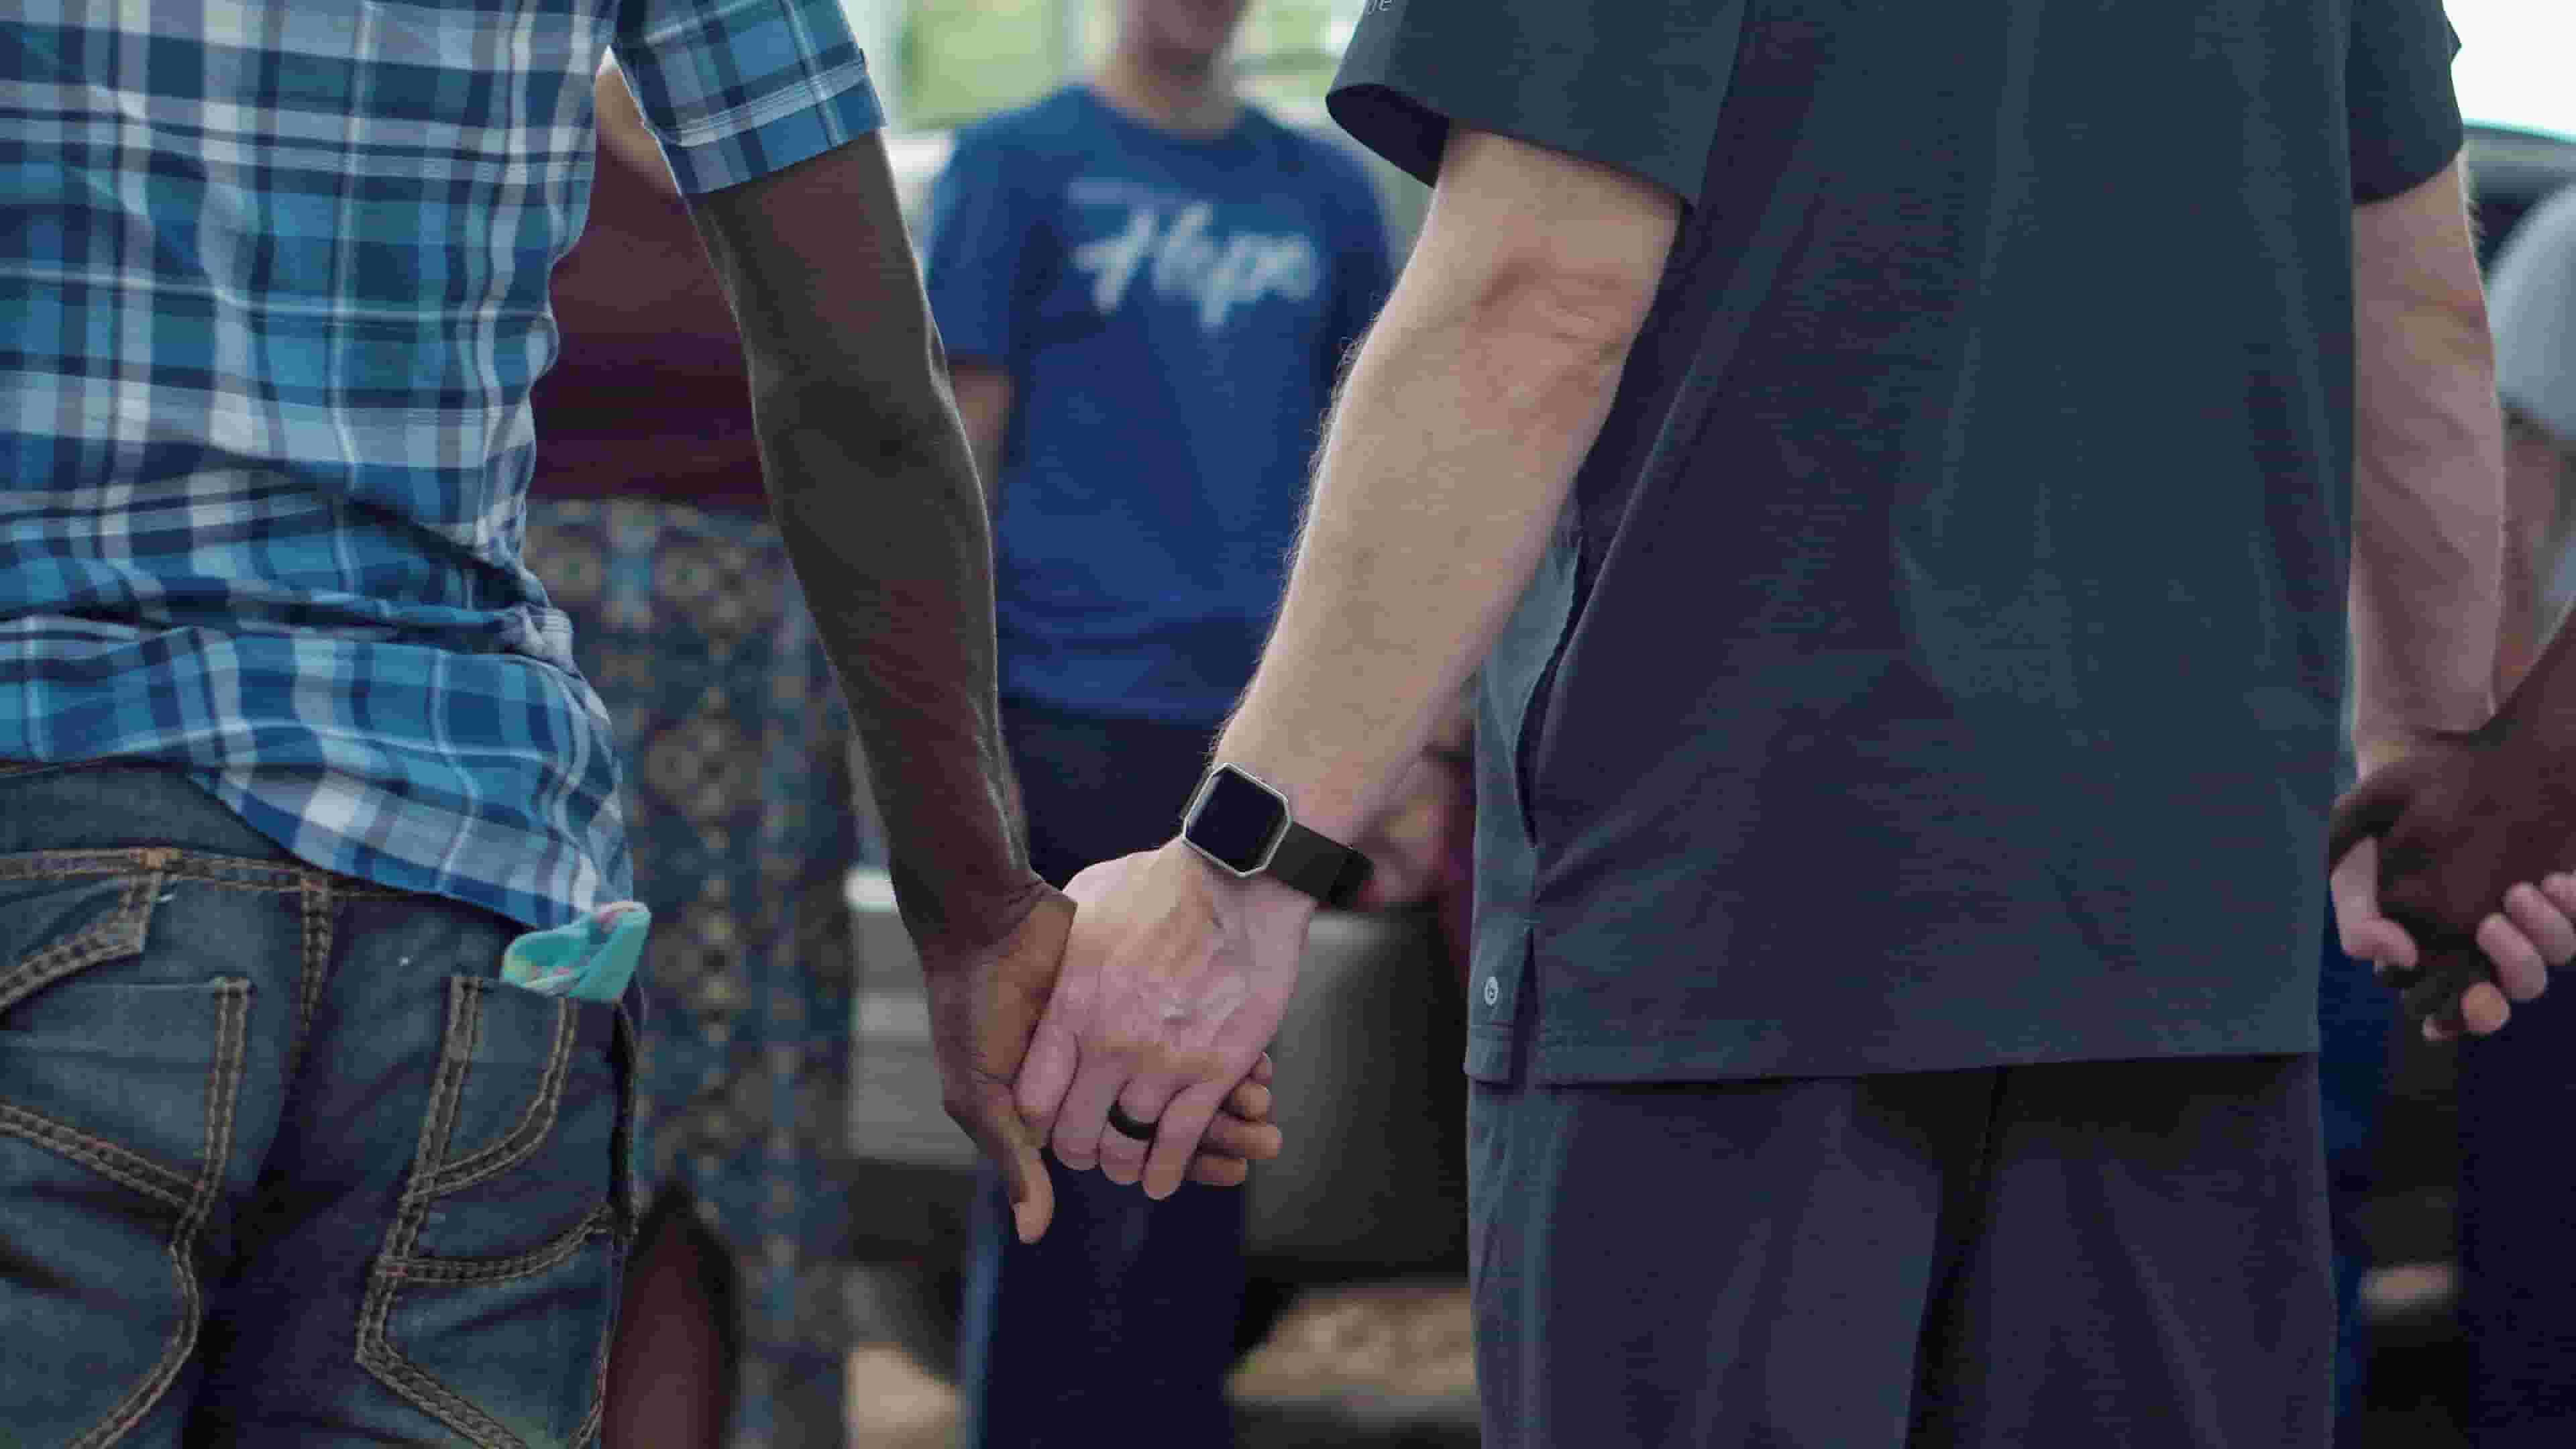 Two men hold hands, offering each other support